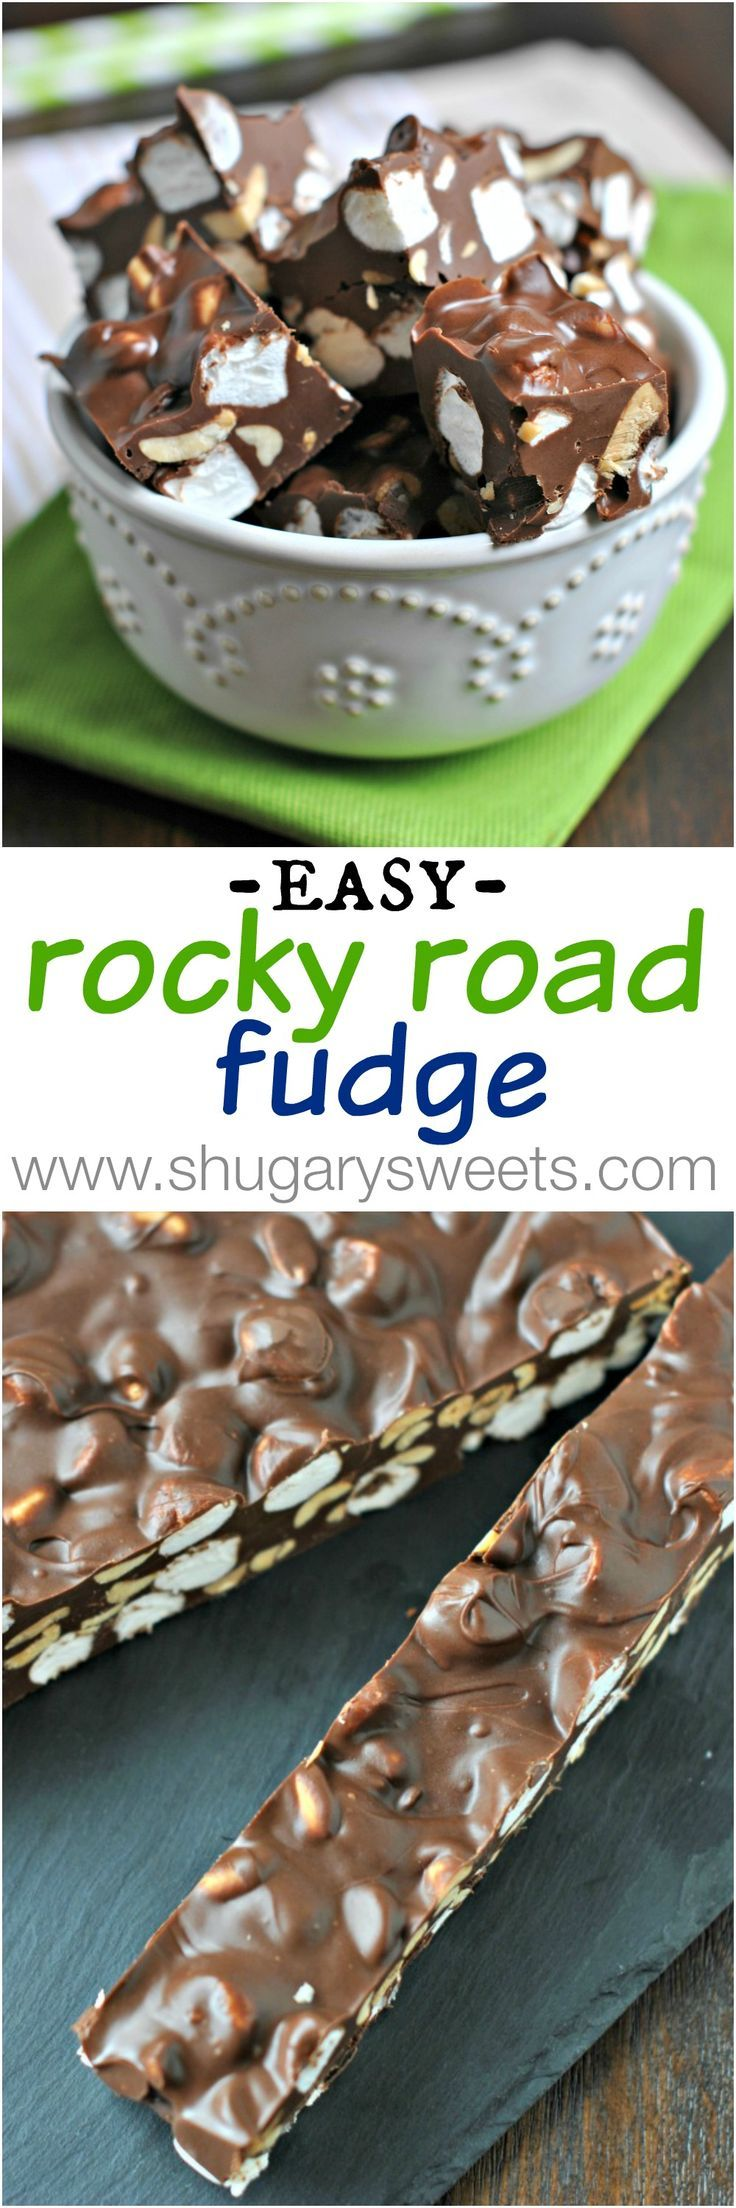 Easy Rocky Road Fudge! 5 ingredients, made in the microwave!!